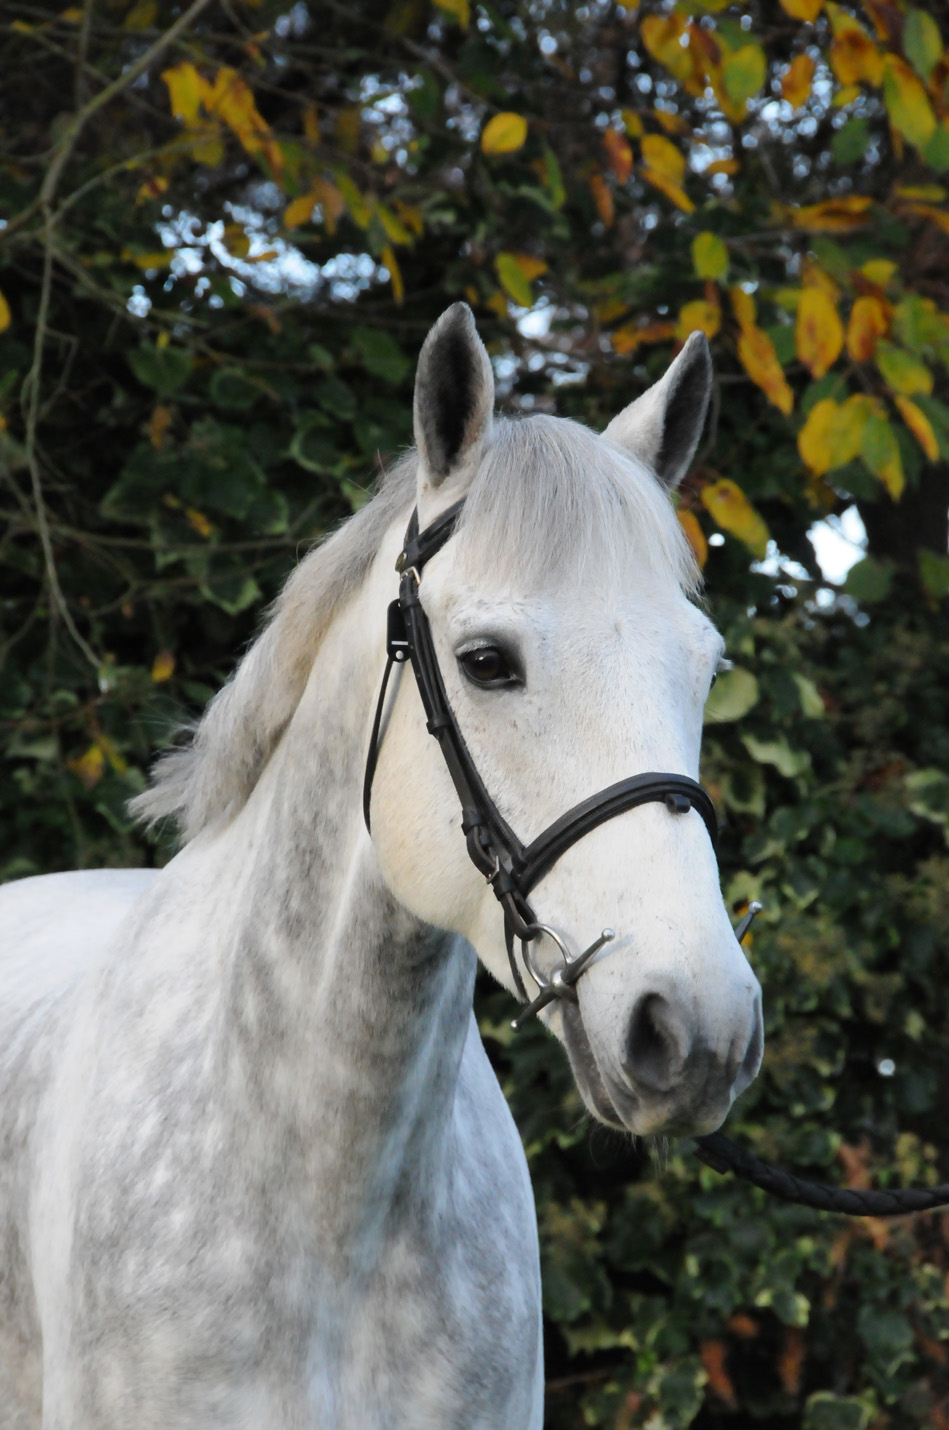 Photo modèle Bruckless top poney de CSO à vendre près de Rennes